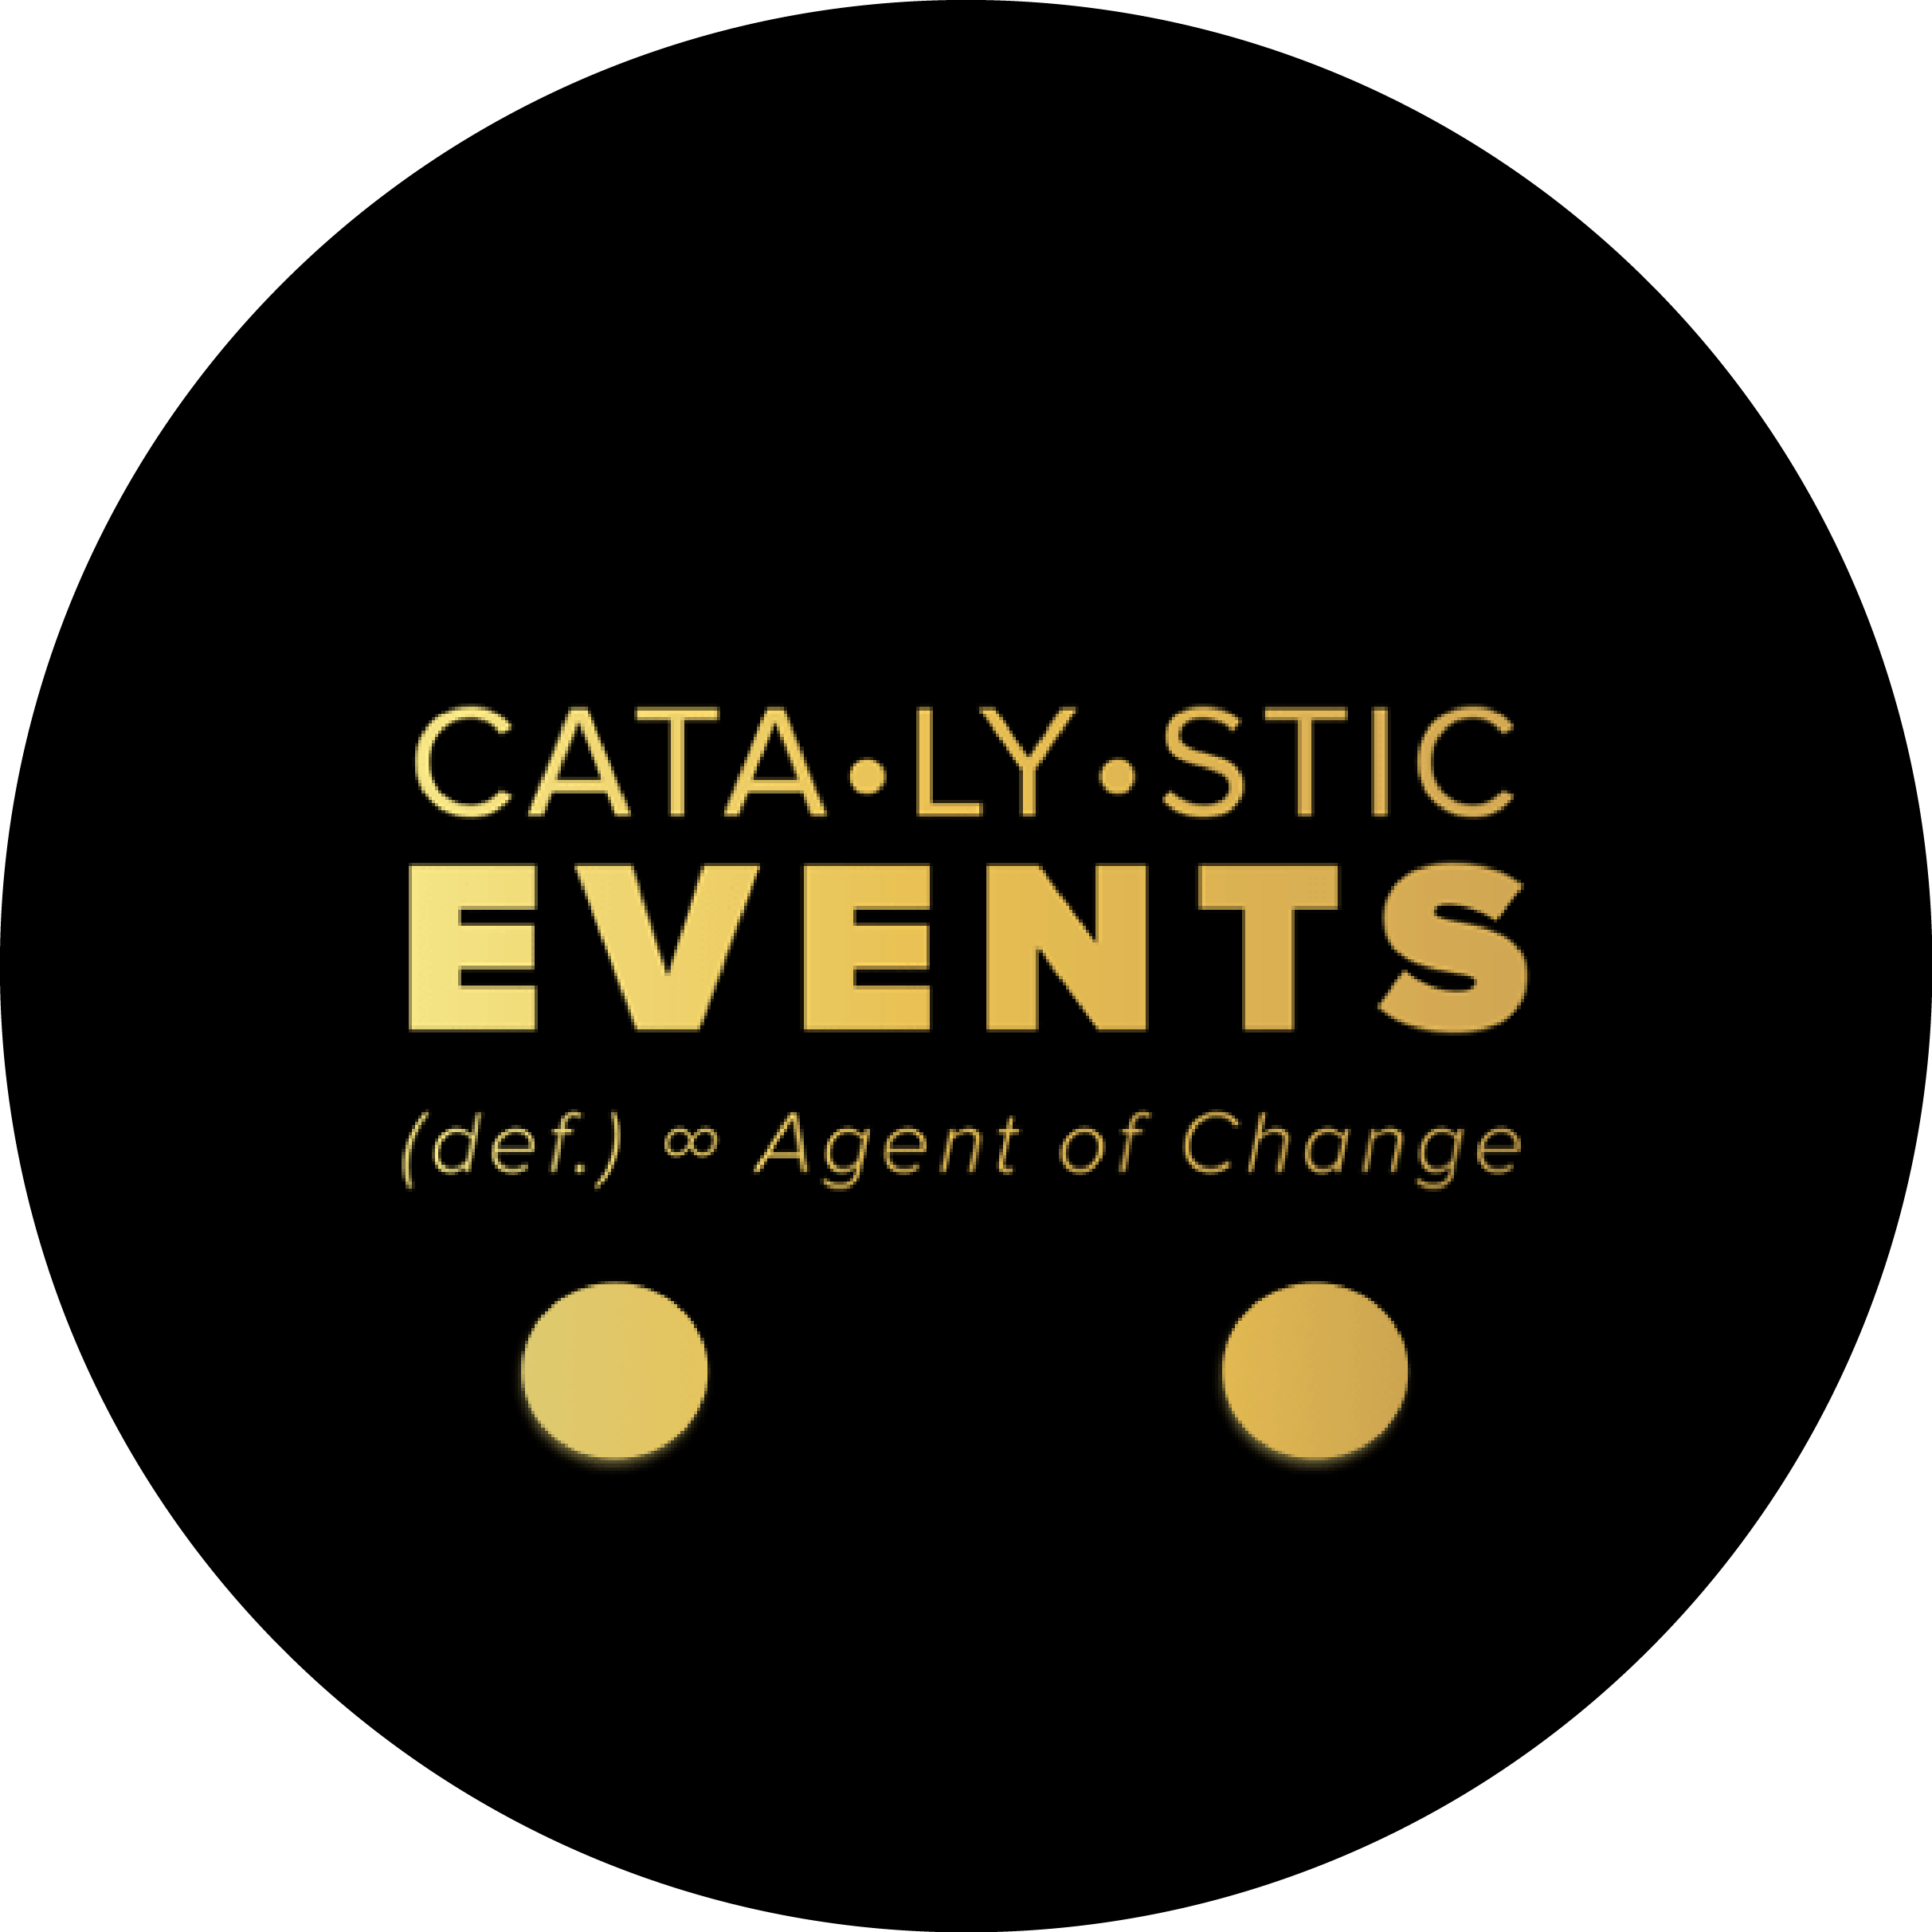 Logo catalystic events